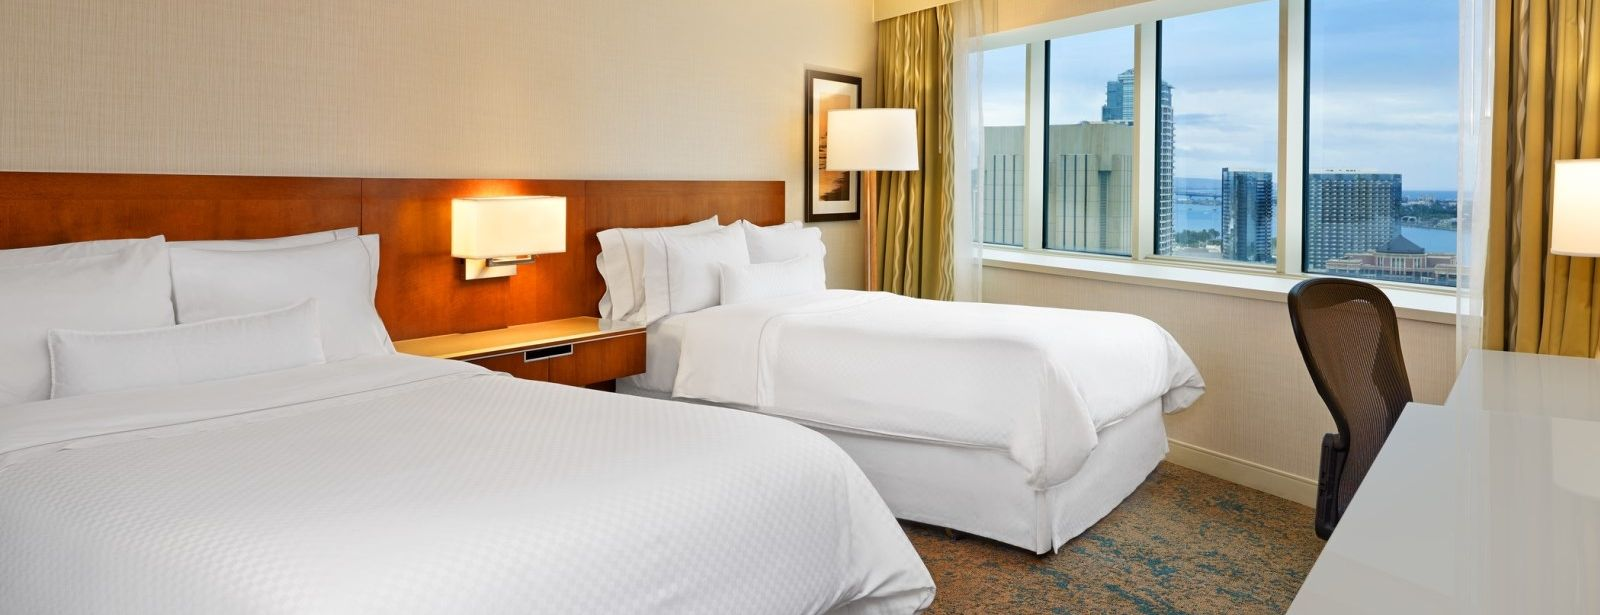 The Westin San Diego Hotel - Deluxe Guestroom